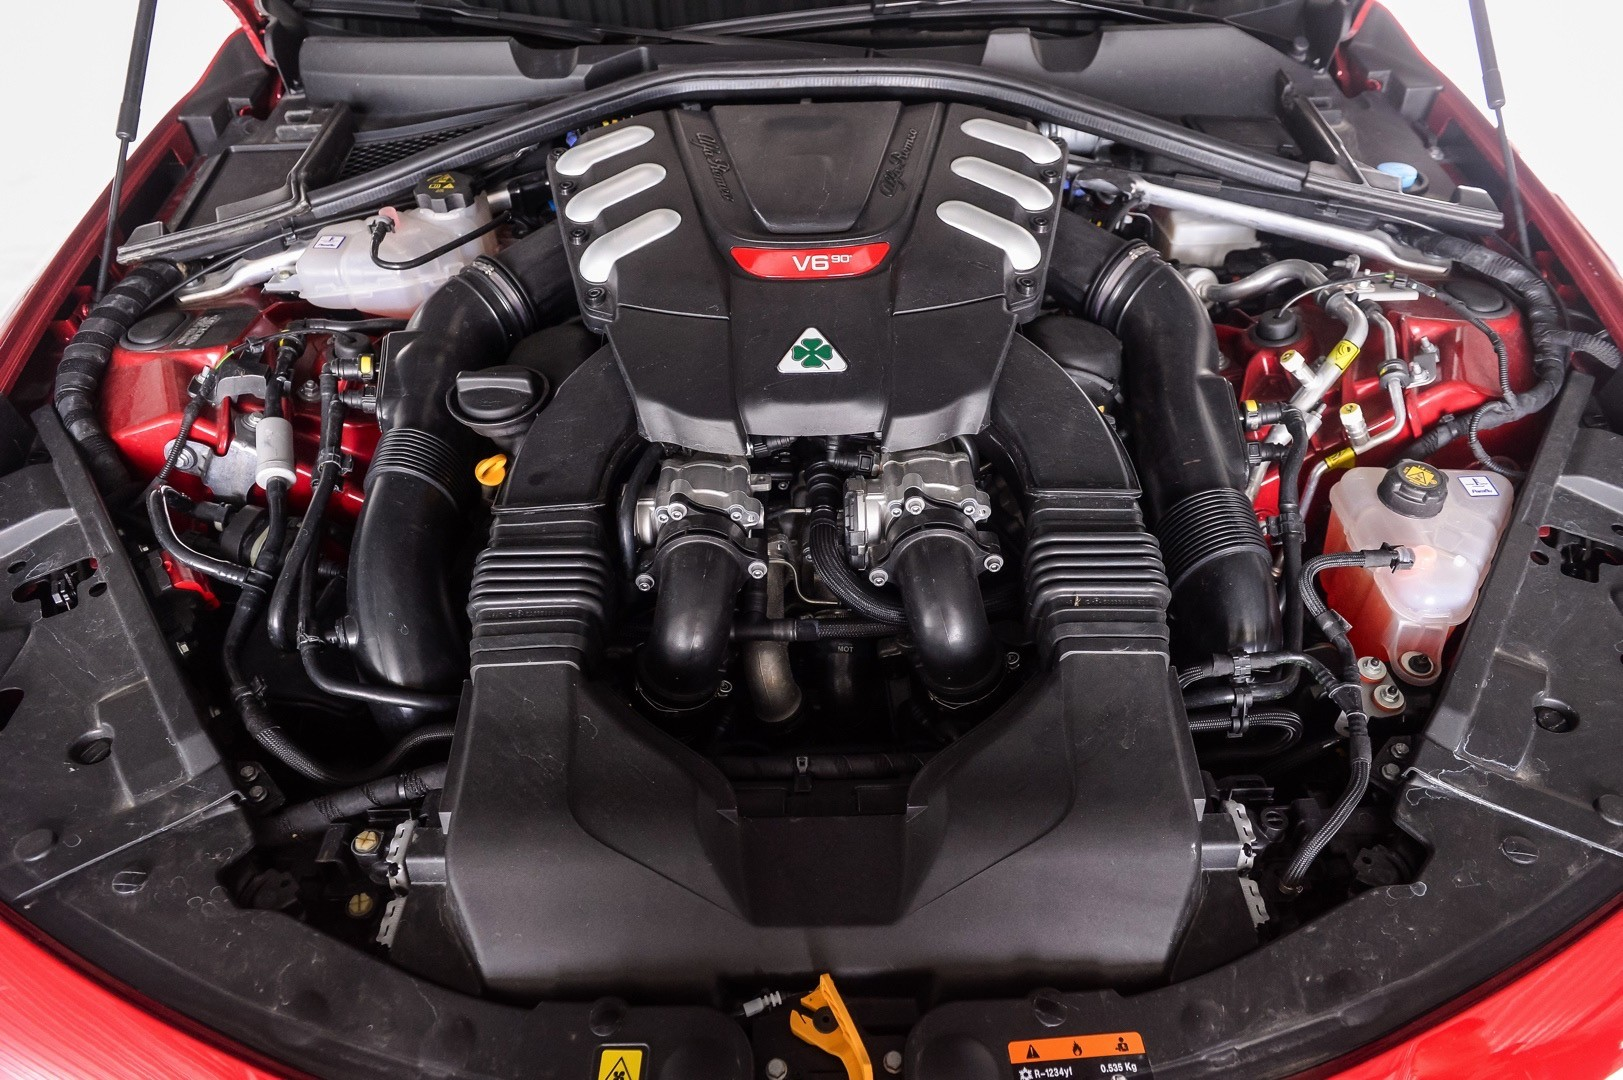 Alfa Romeo Giulia Goes On Sale In The US Priced From - Alfa romeo engines for sale